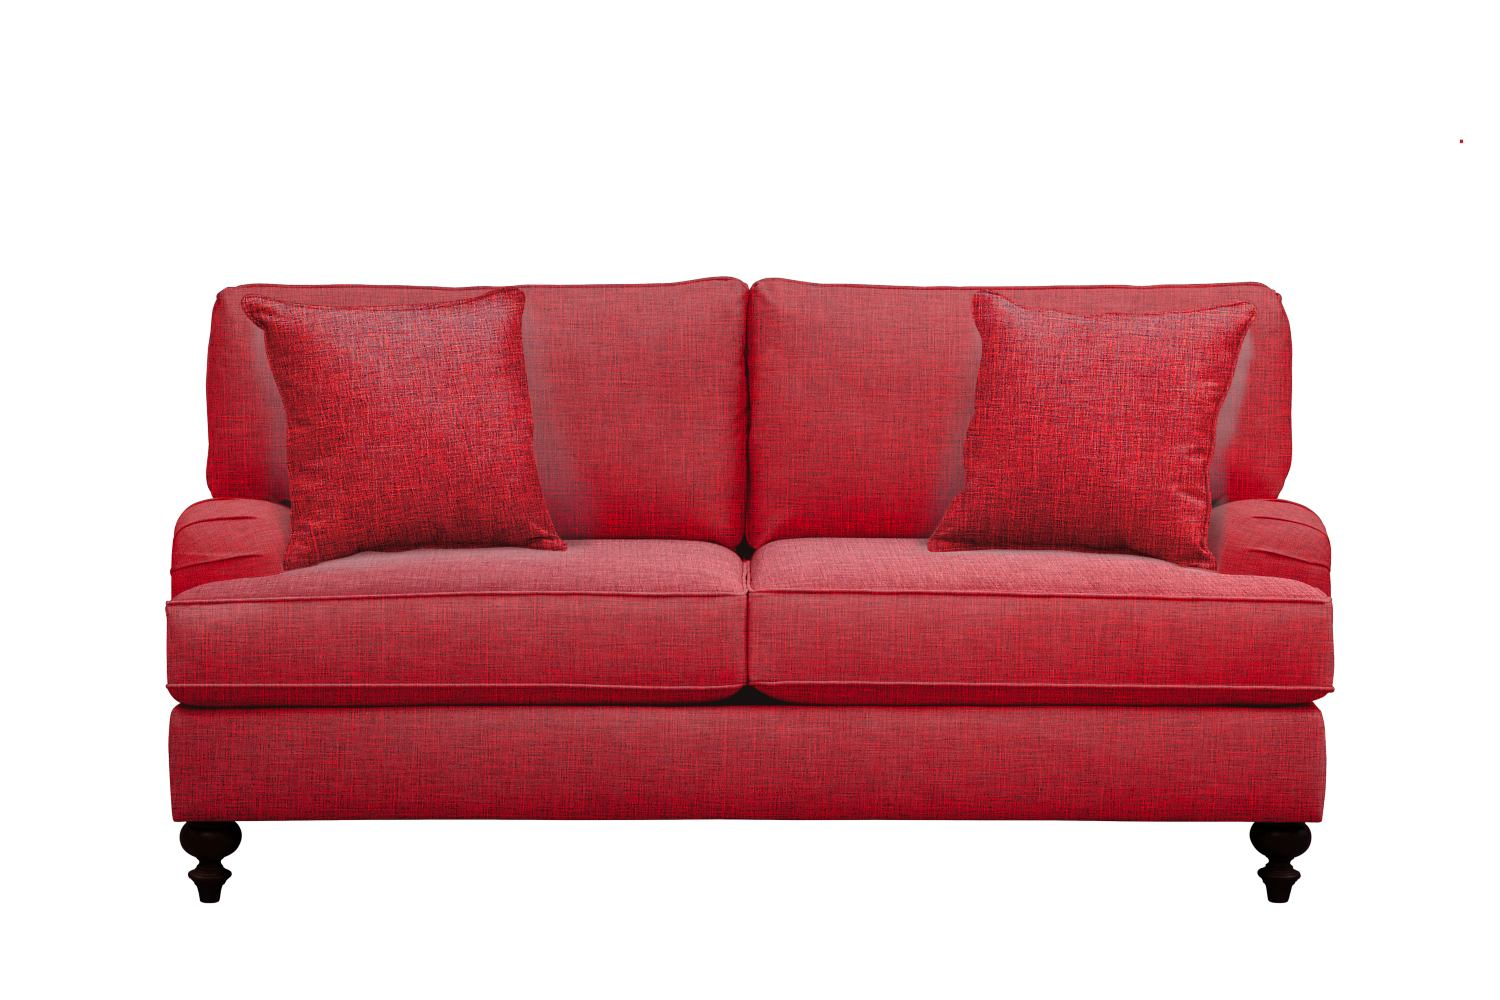 "Avery English Arm Sofa 74"" Milford II Red w/ Milford II Red  Pillow"